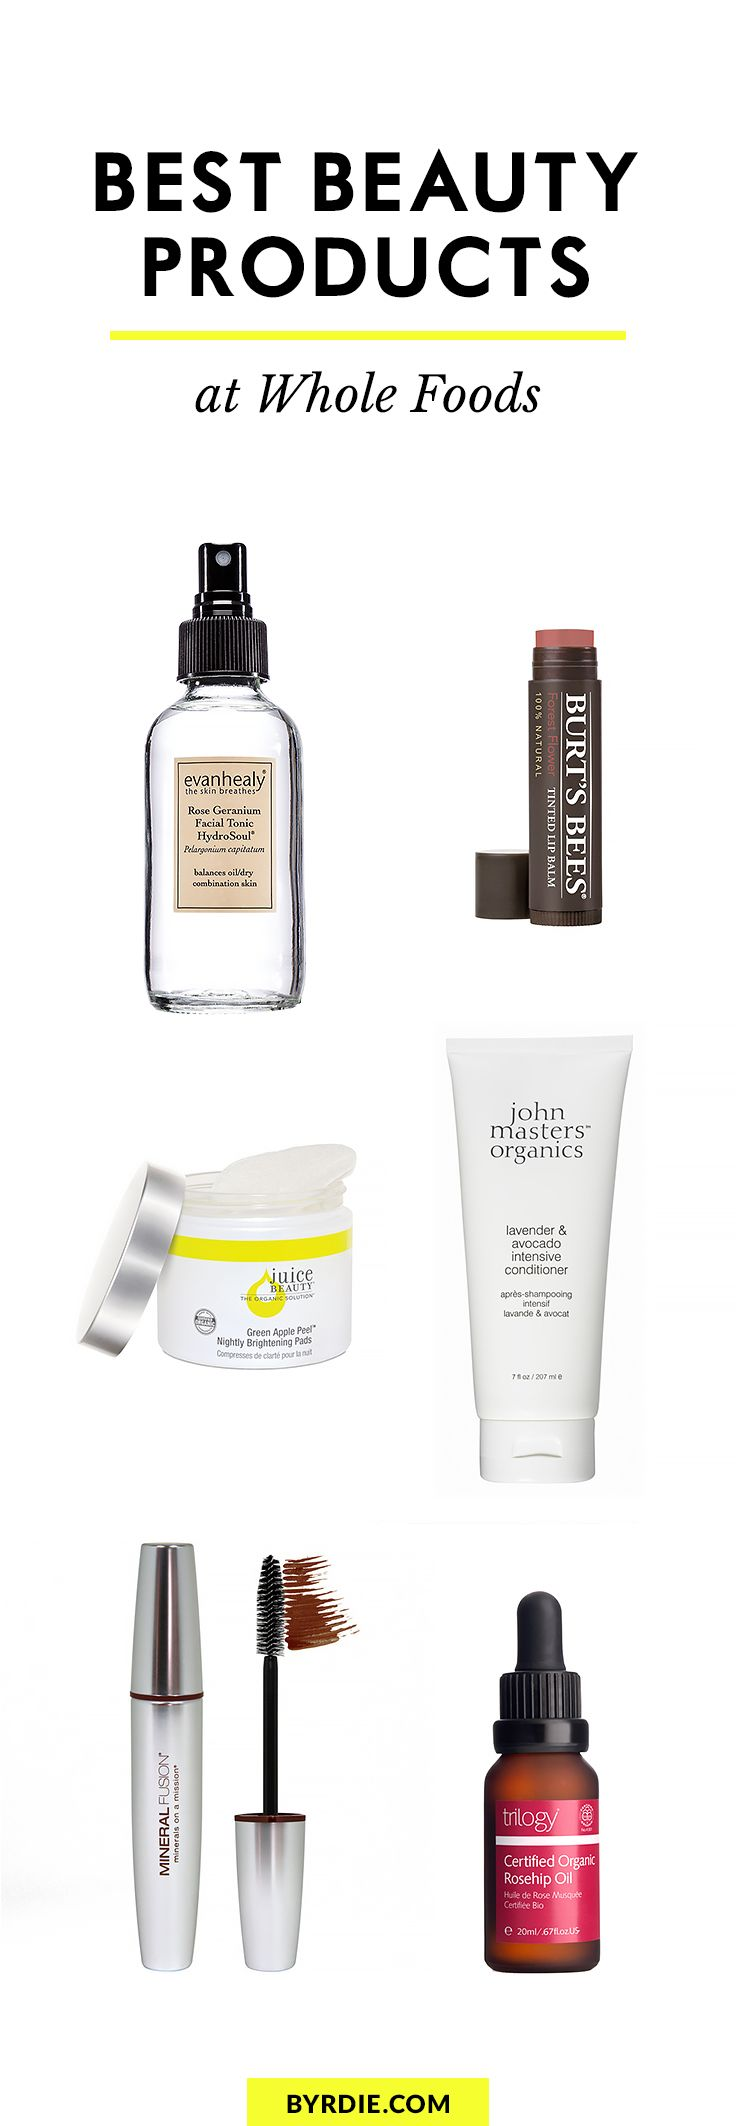 The best beauty products at Whole Foods